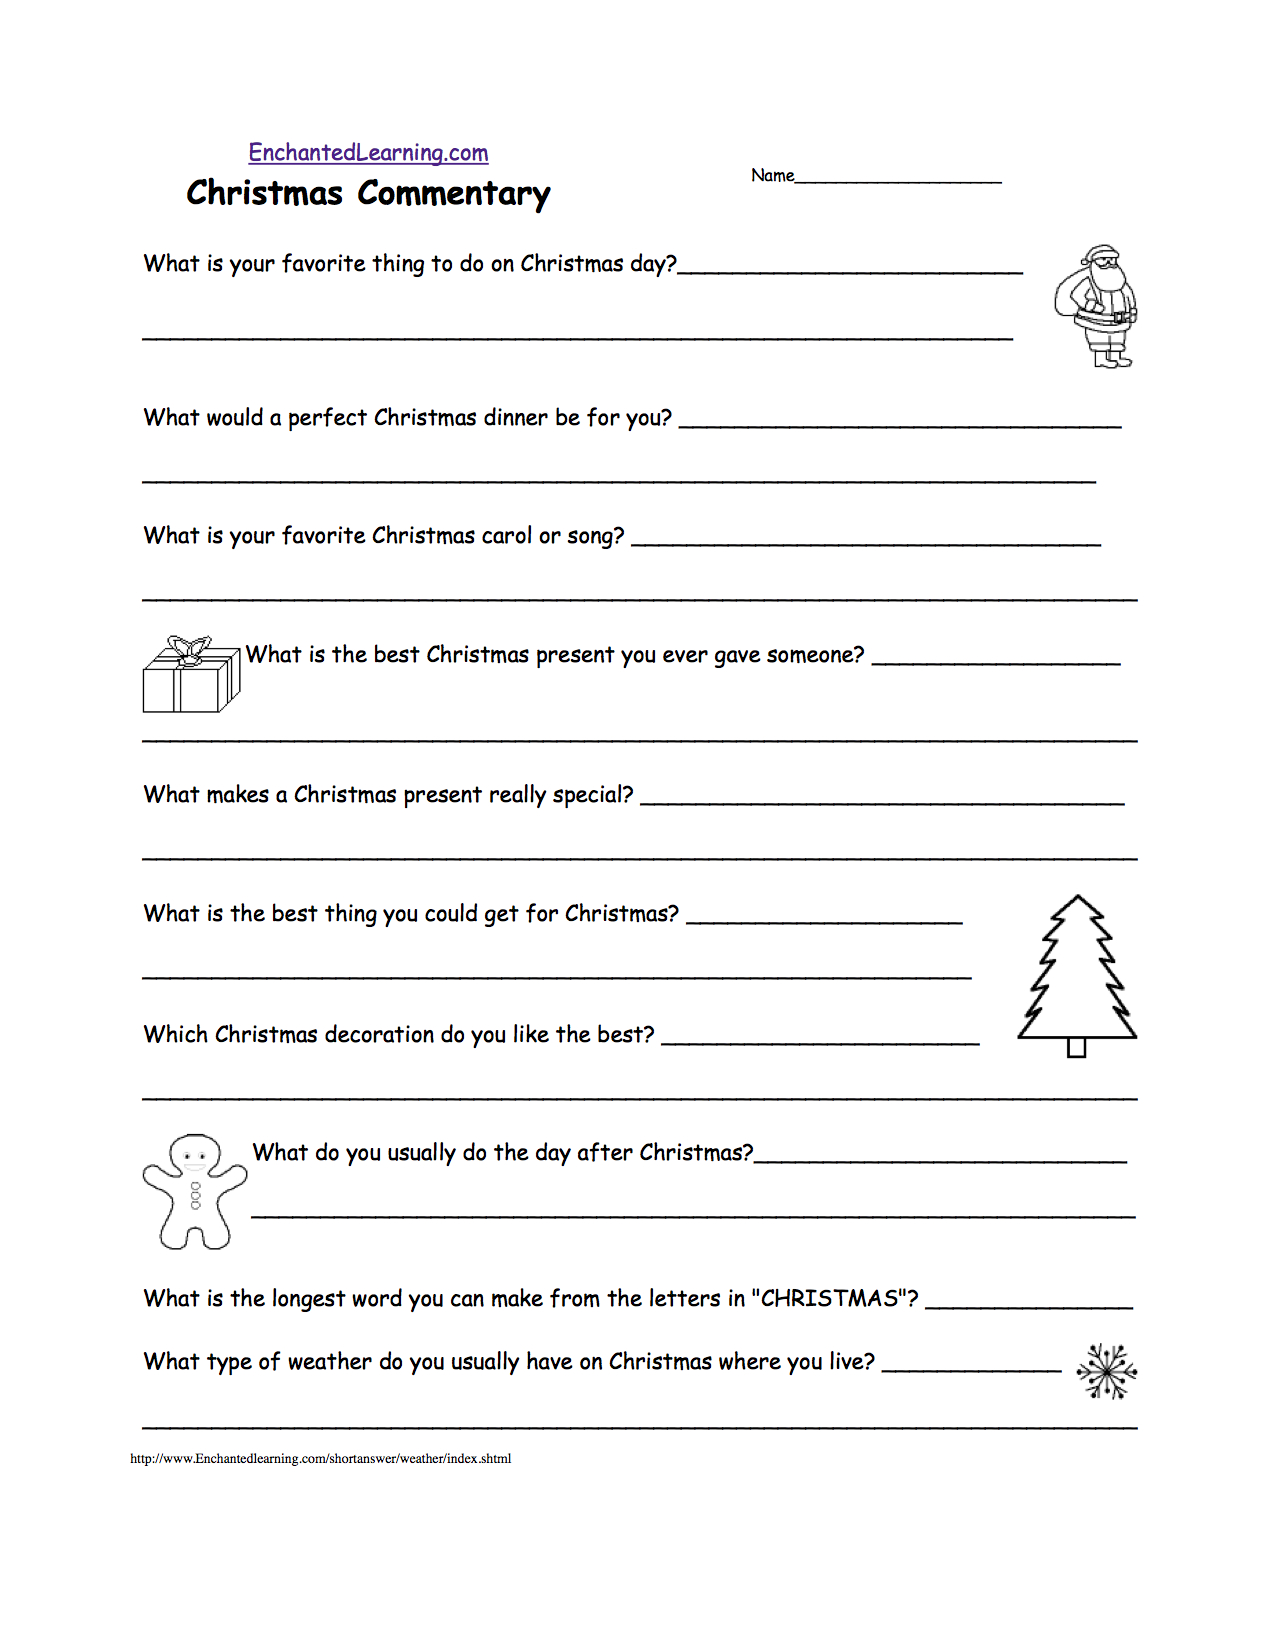 Short Answer Quizzes - Printable - Enchantedlearning | Free Printable Landform Worksheets